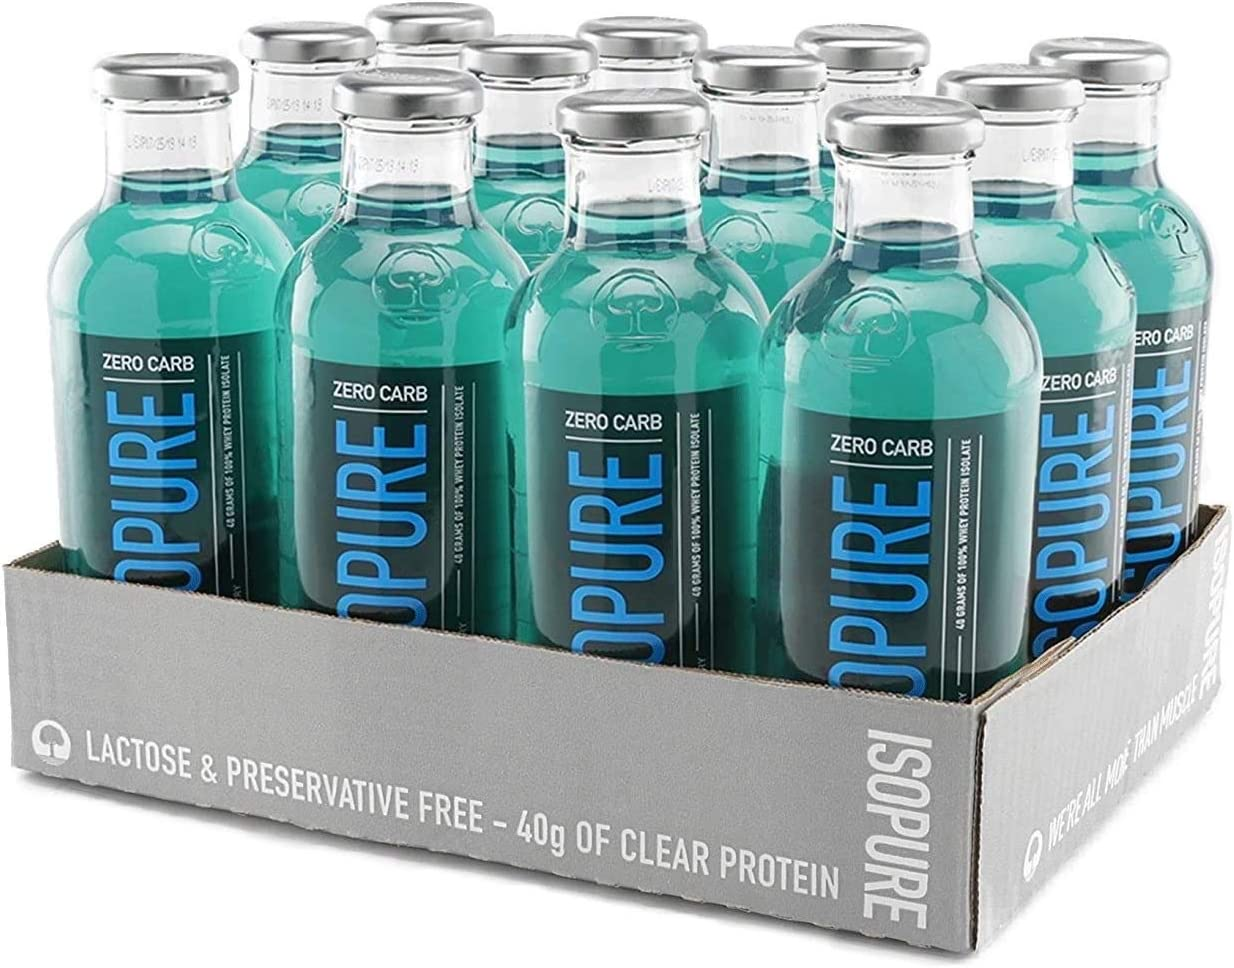 Isopure 40g Protein, Zero Carb Ready-to-Drink- Blue Raspberry, 20 Ounce (Pack of 12) …